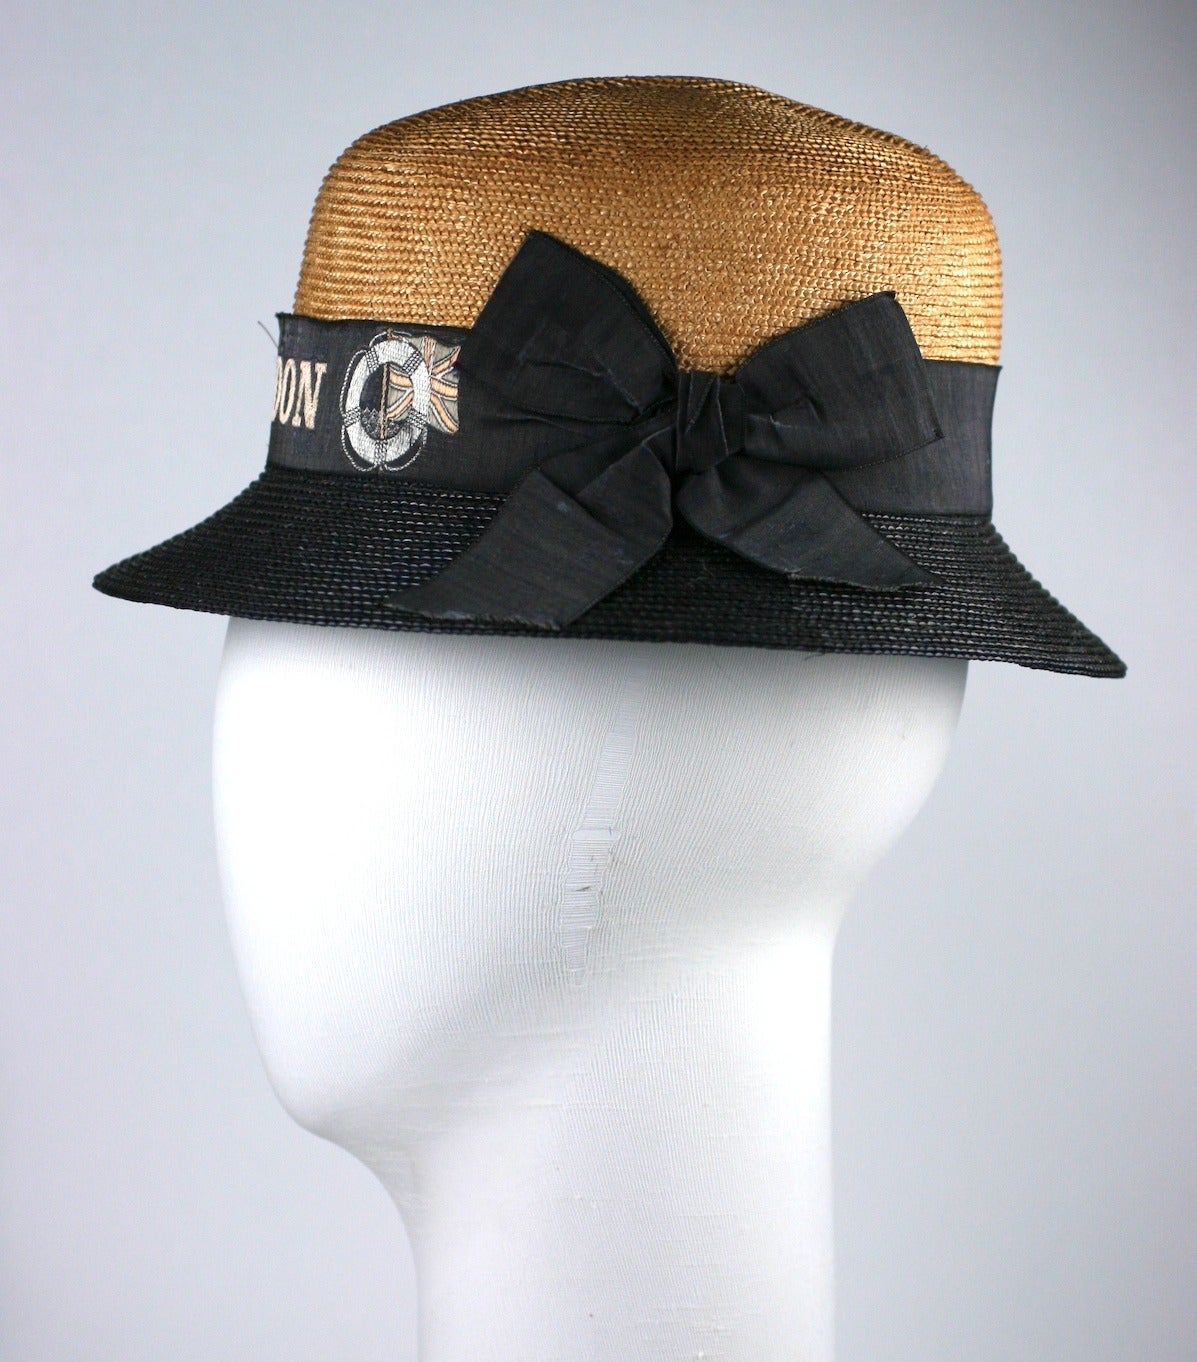 Charming Straw 2 toned hat from the early 20th Century, Advertising ribbon has